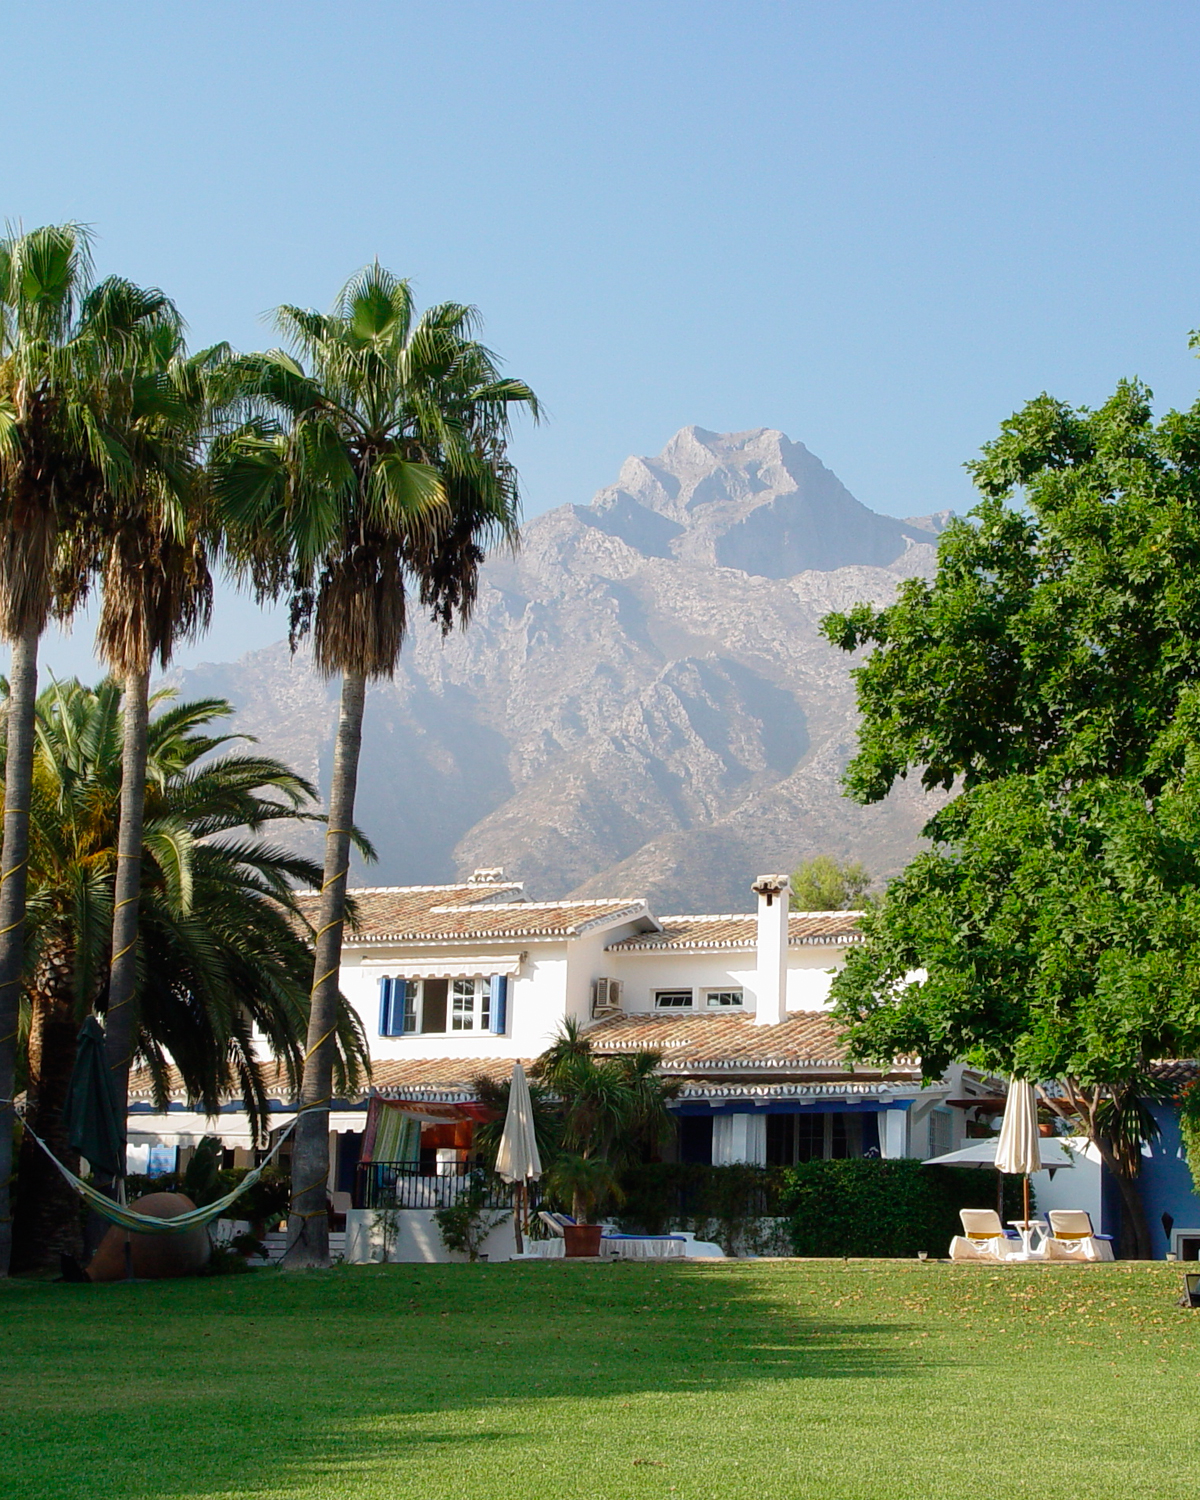 smith-casa-la-concha-marbella-spain.jpg